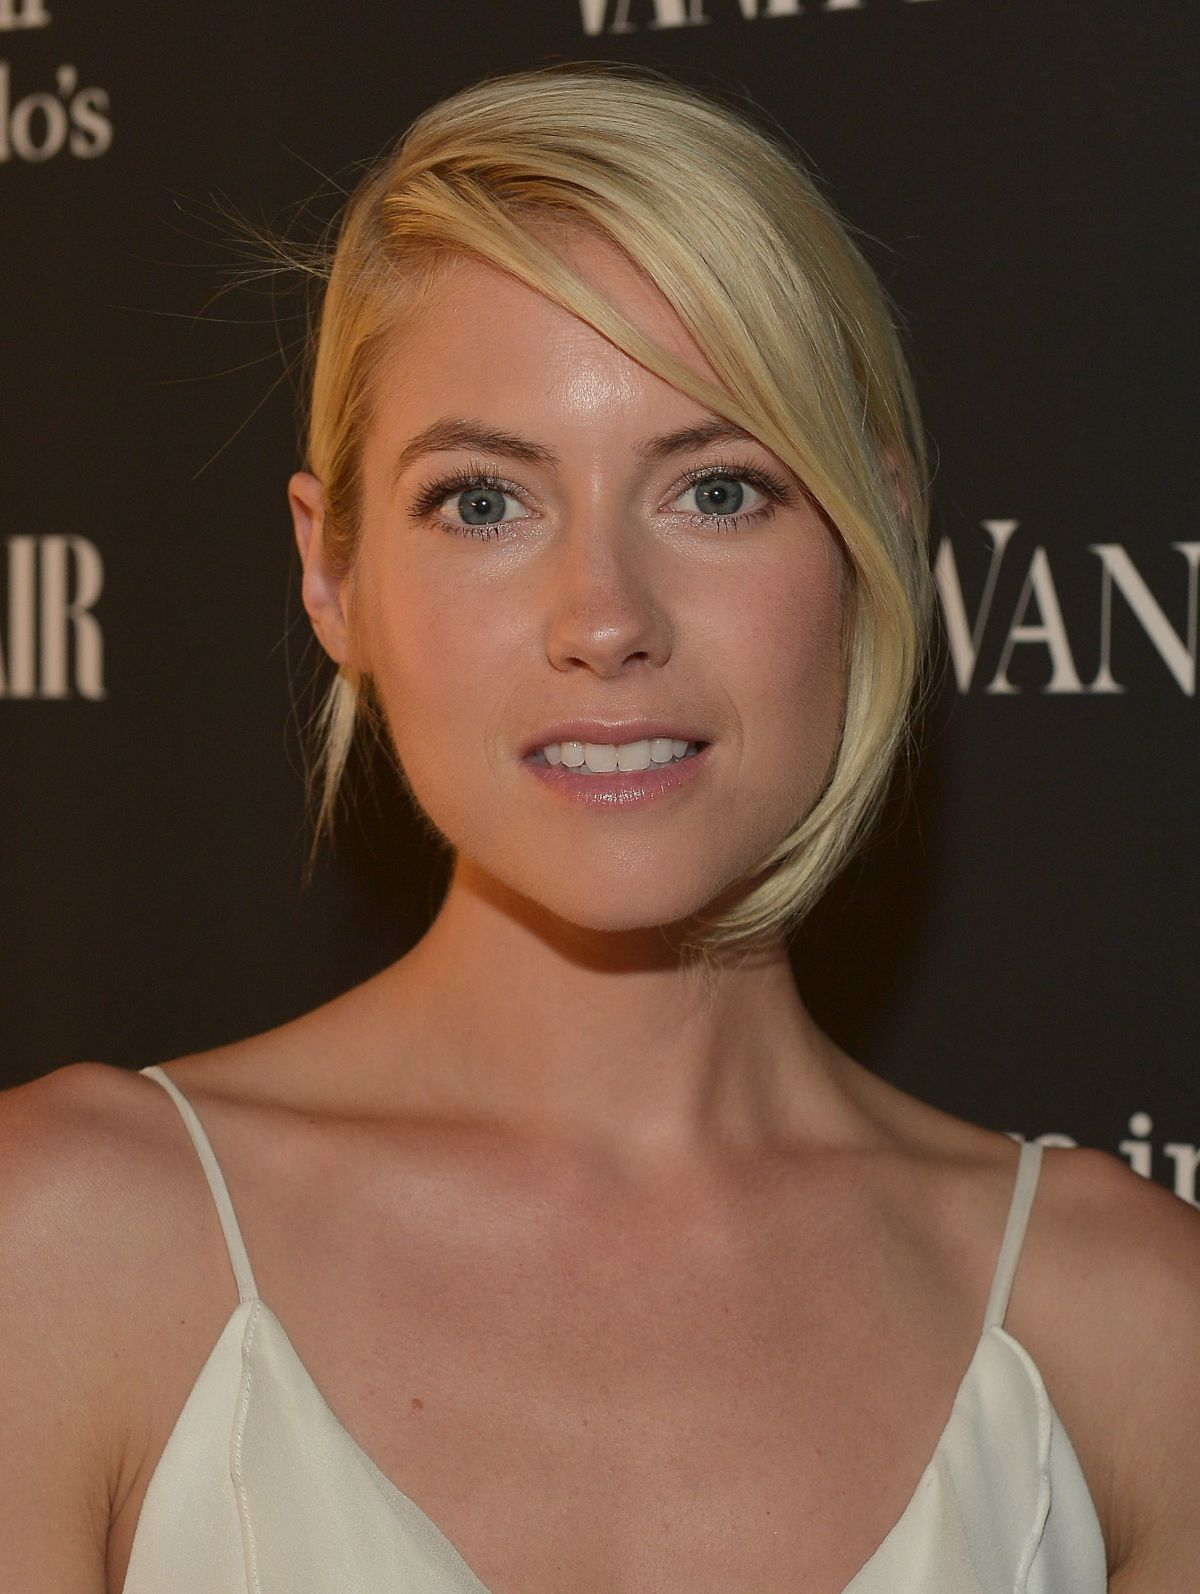 Photos Laura Ramsey nudes (42 photos), Topless, Hot, Boobs, swimsuit 2019